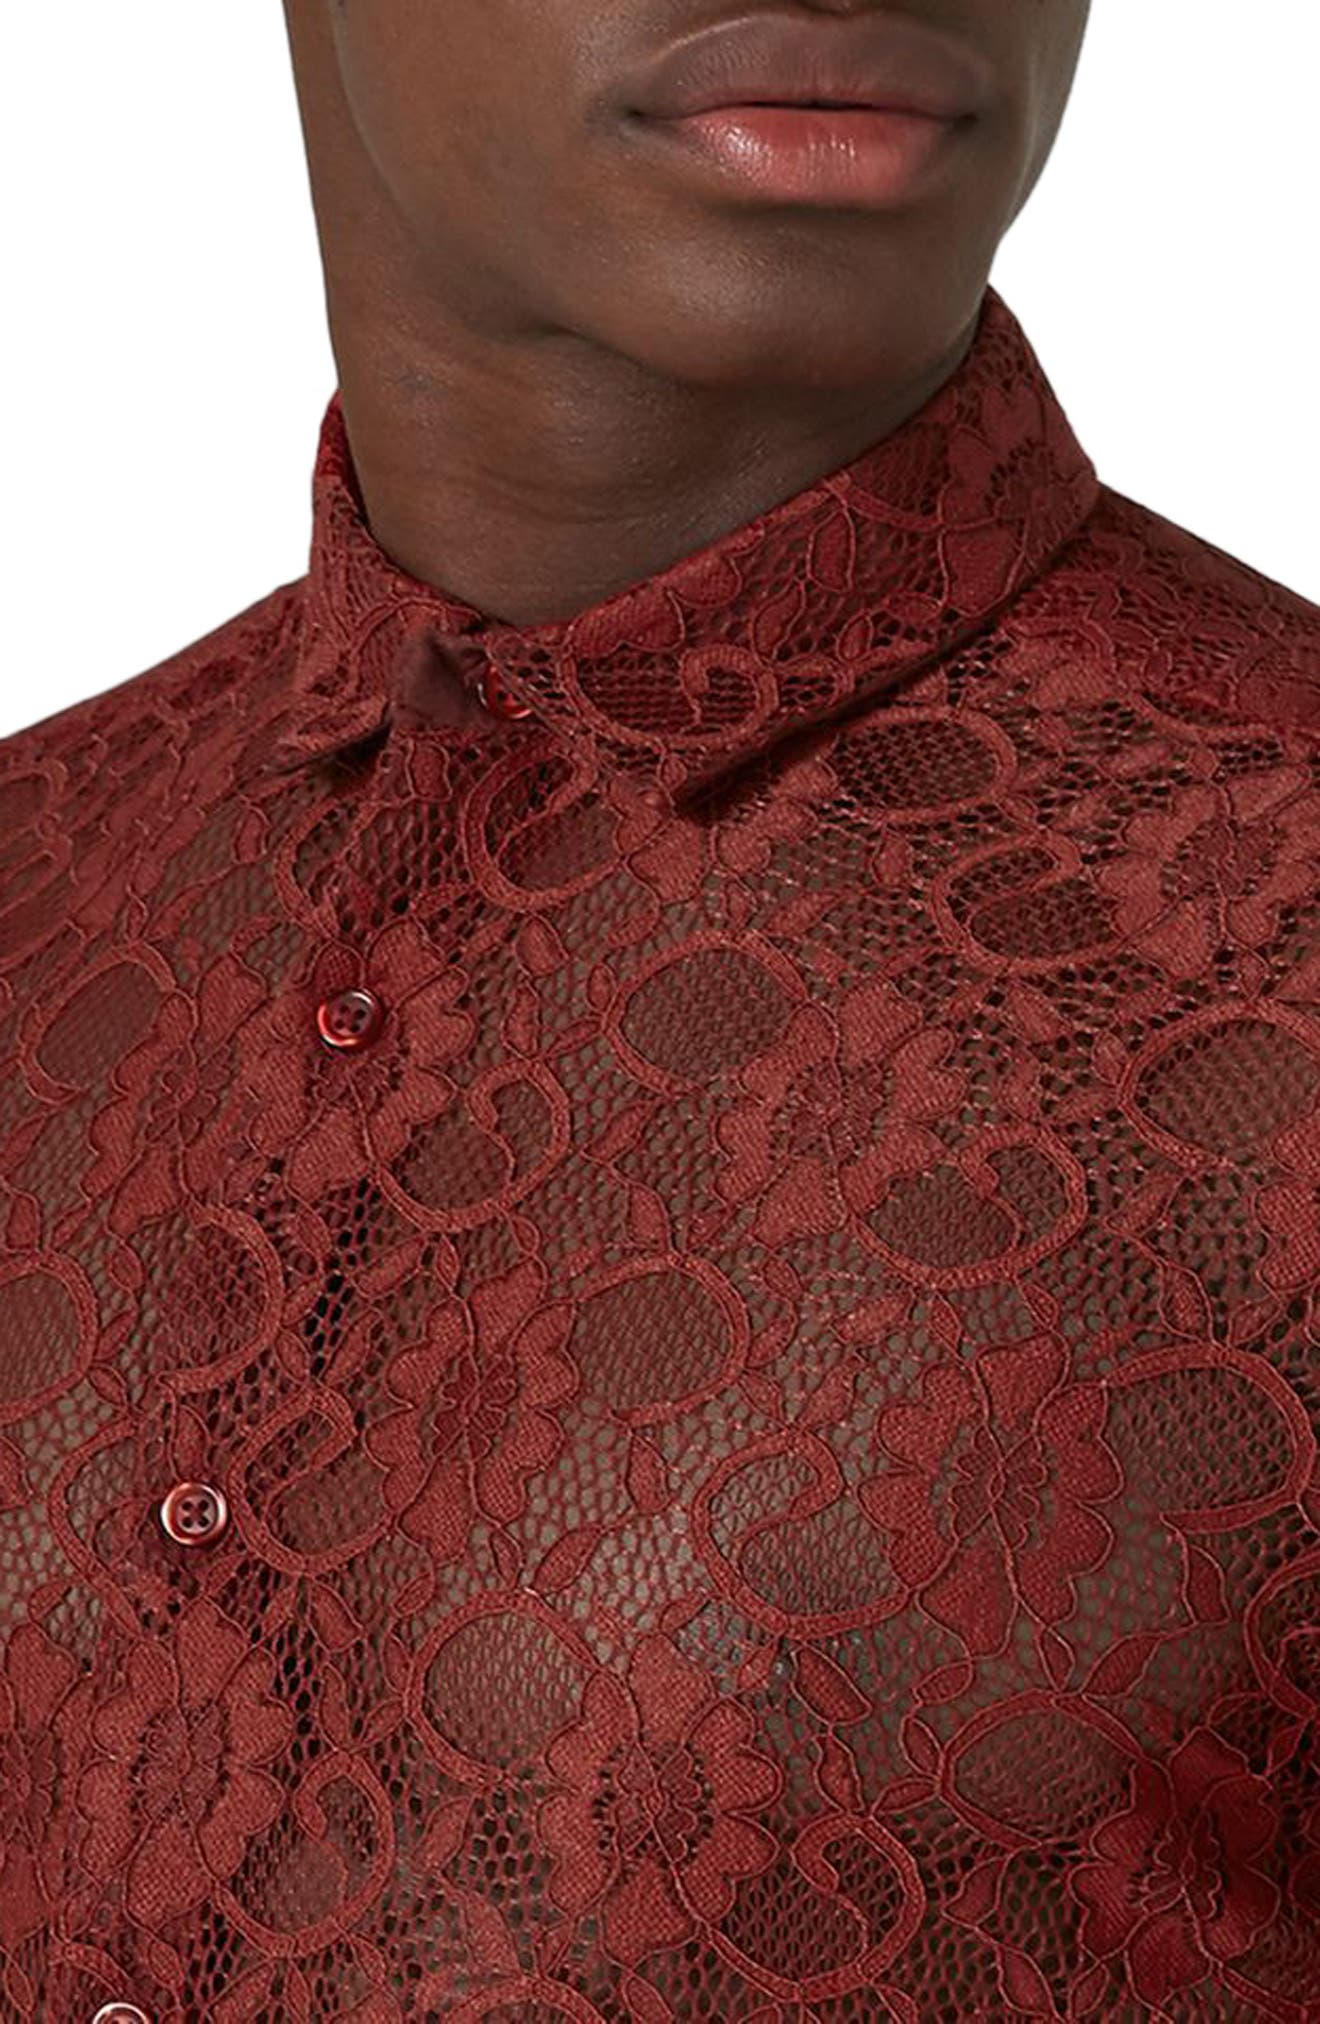 Muscle Fit Sheer Lace Shirt,                             Alternate thumbnail 3, color,                             Red